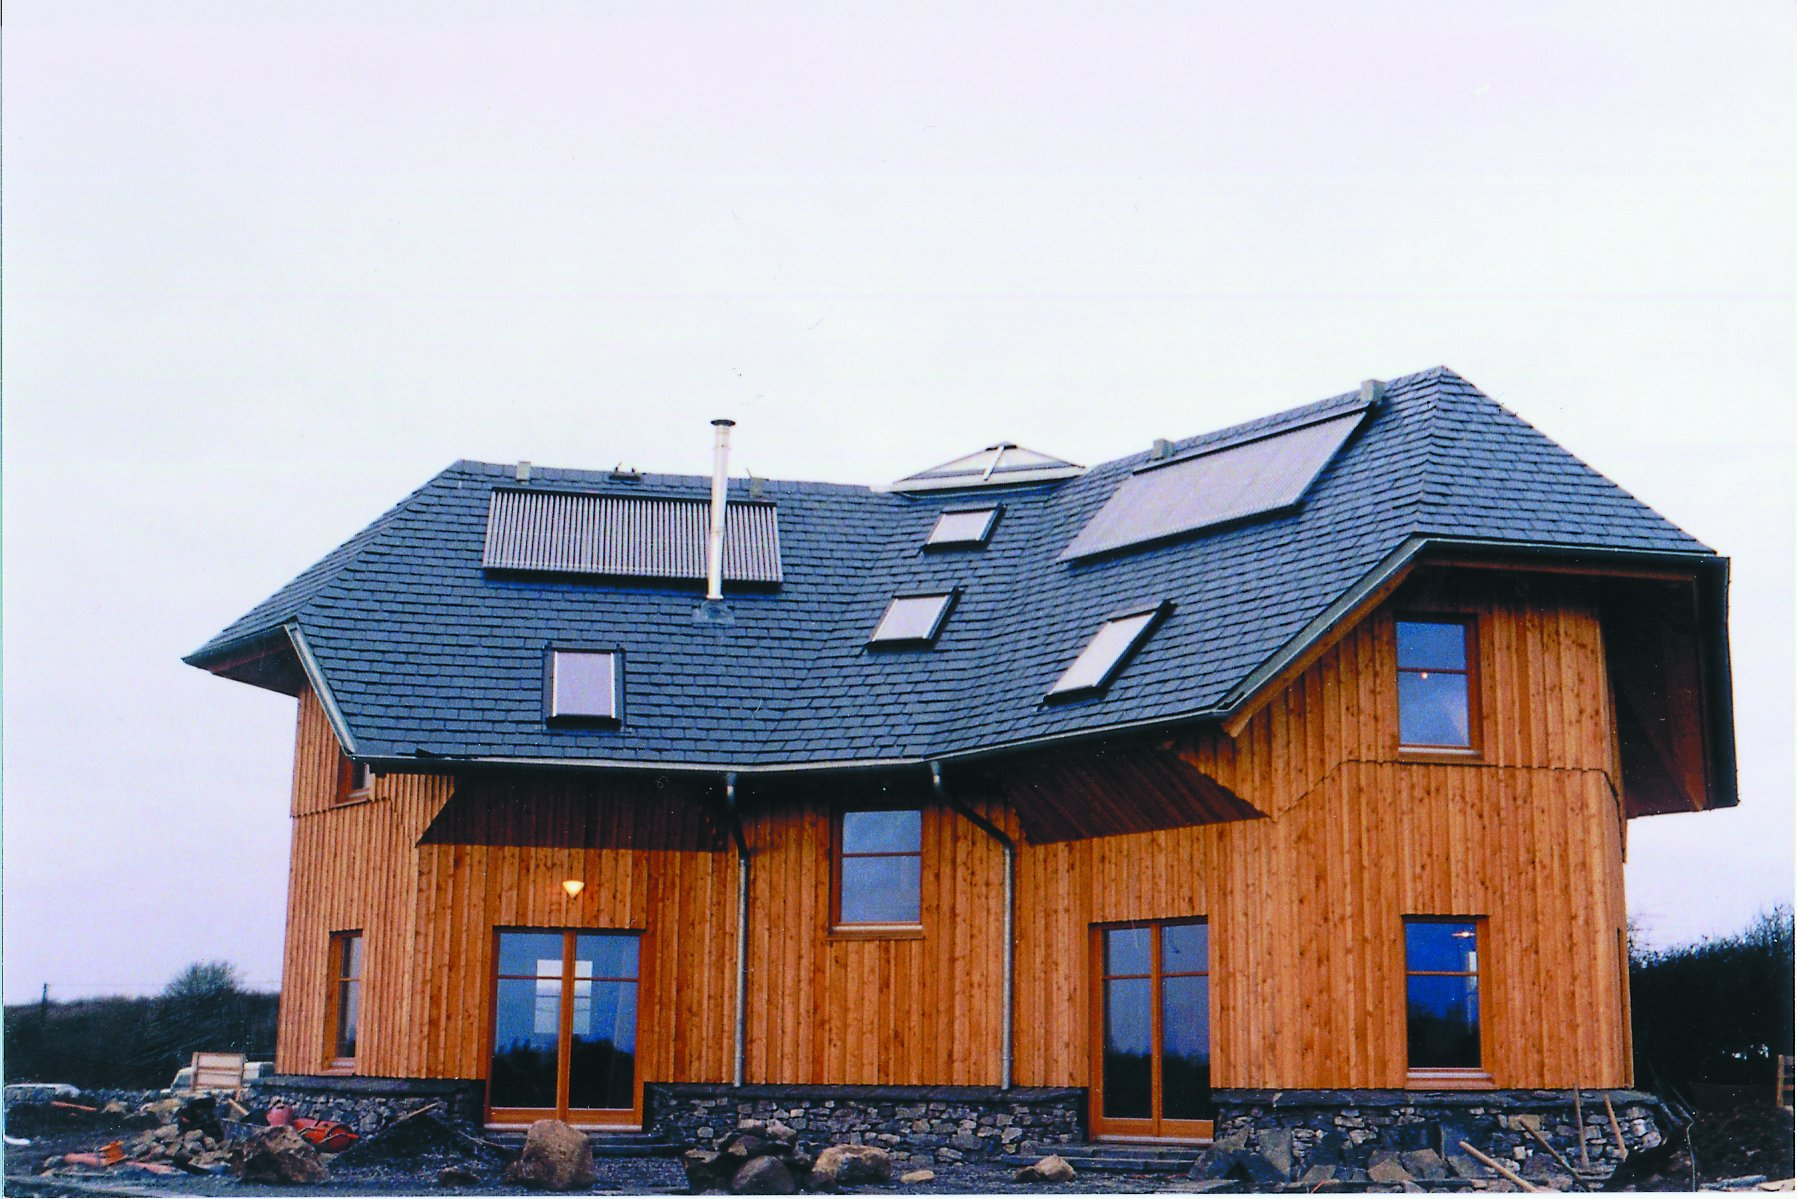 Kingspan Environmental Thermomax Solar Heat Europe – Wooden Irish house equipped with vacuum tube collectors